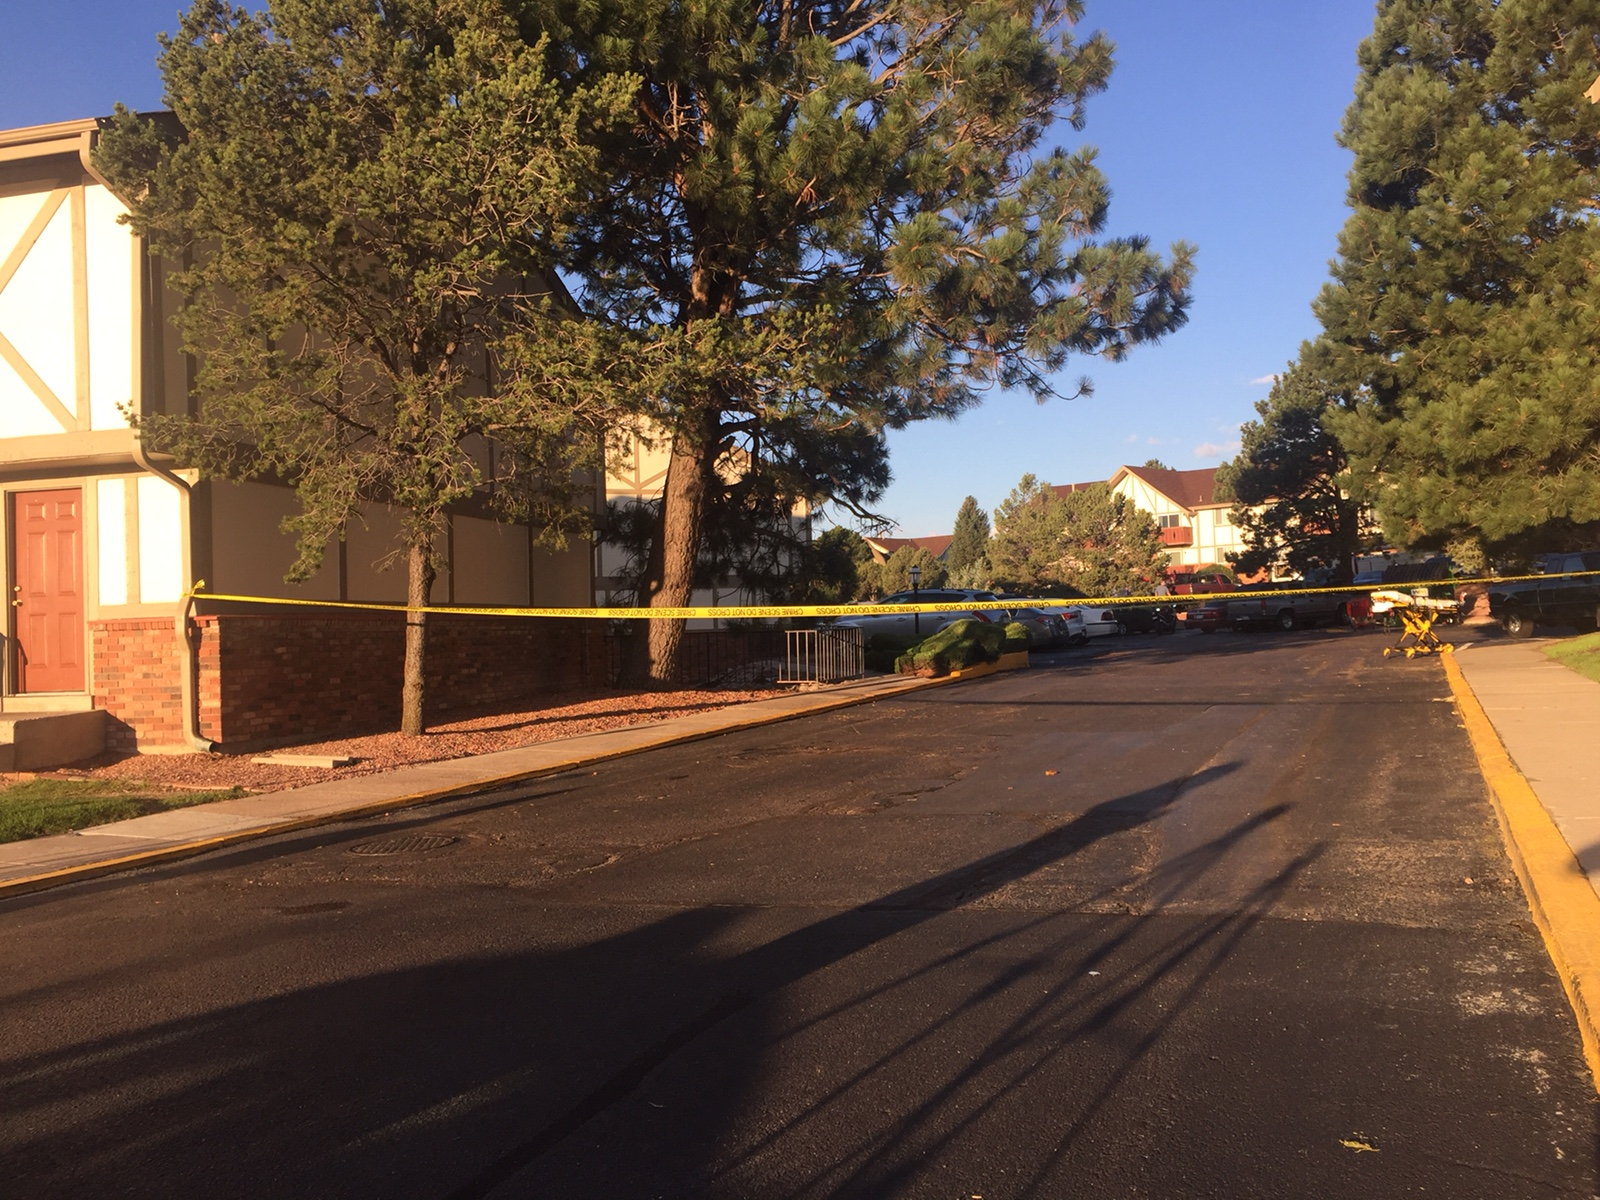 Police continue to investigate a shooting at the Kingsborough Apartments in Colorado Springs around 7 a.m. Tuesday. _ Brett Roberts - FOX21 New_295677